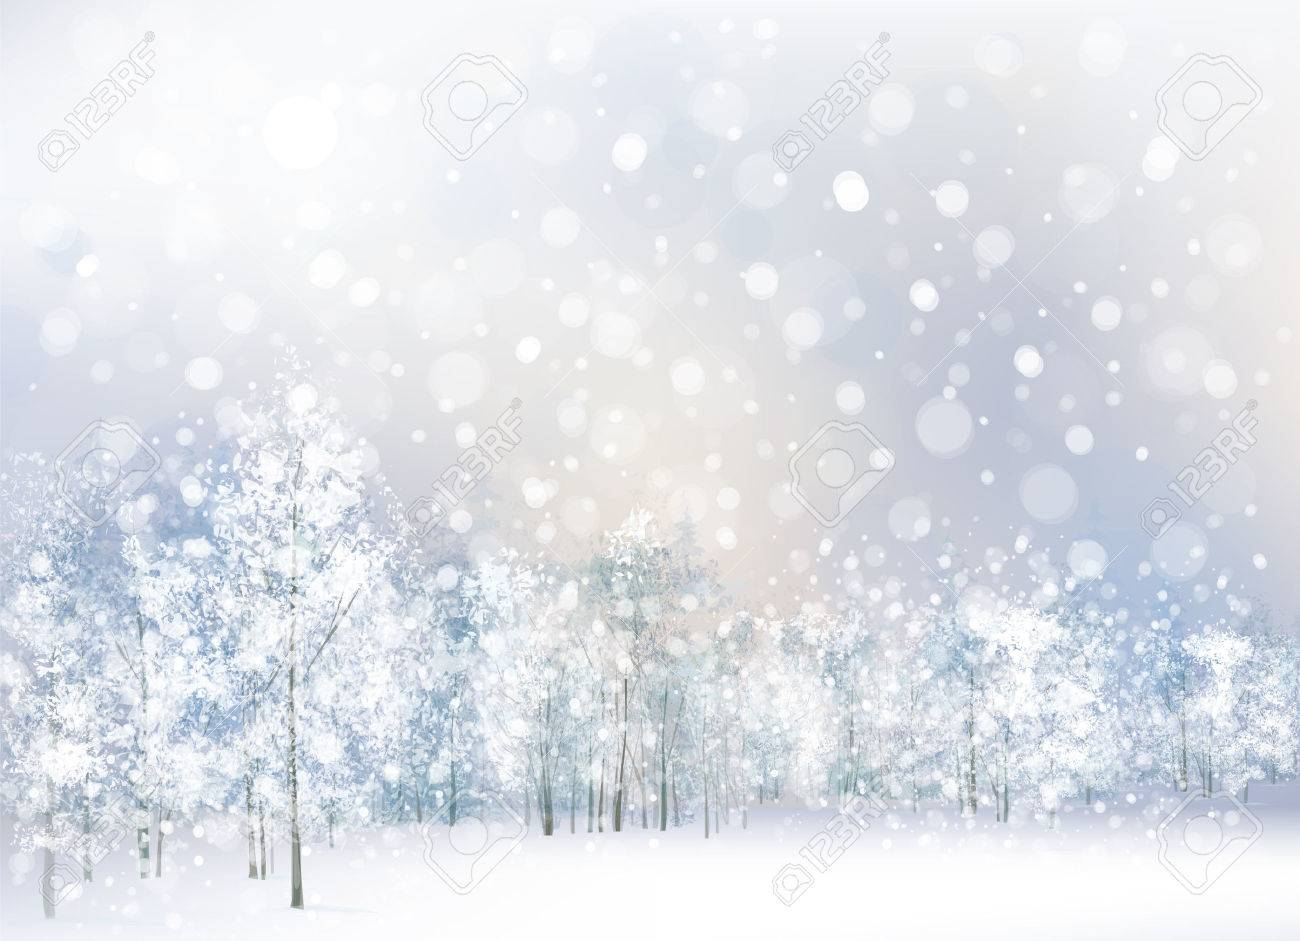 Vector of winter scene with forest background. - 29670267